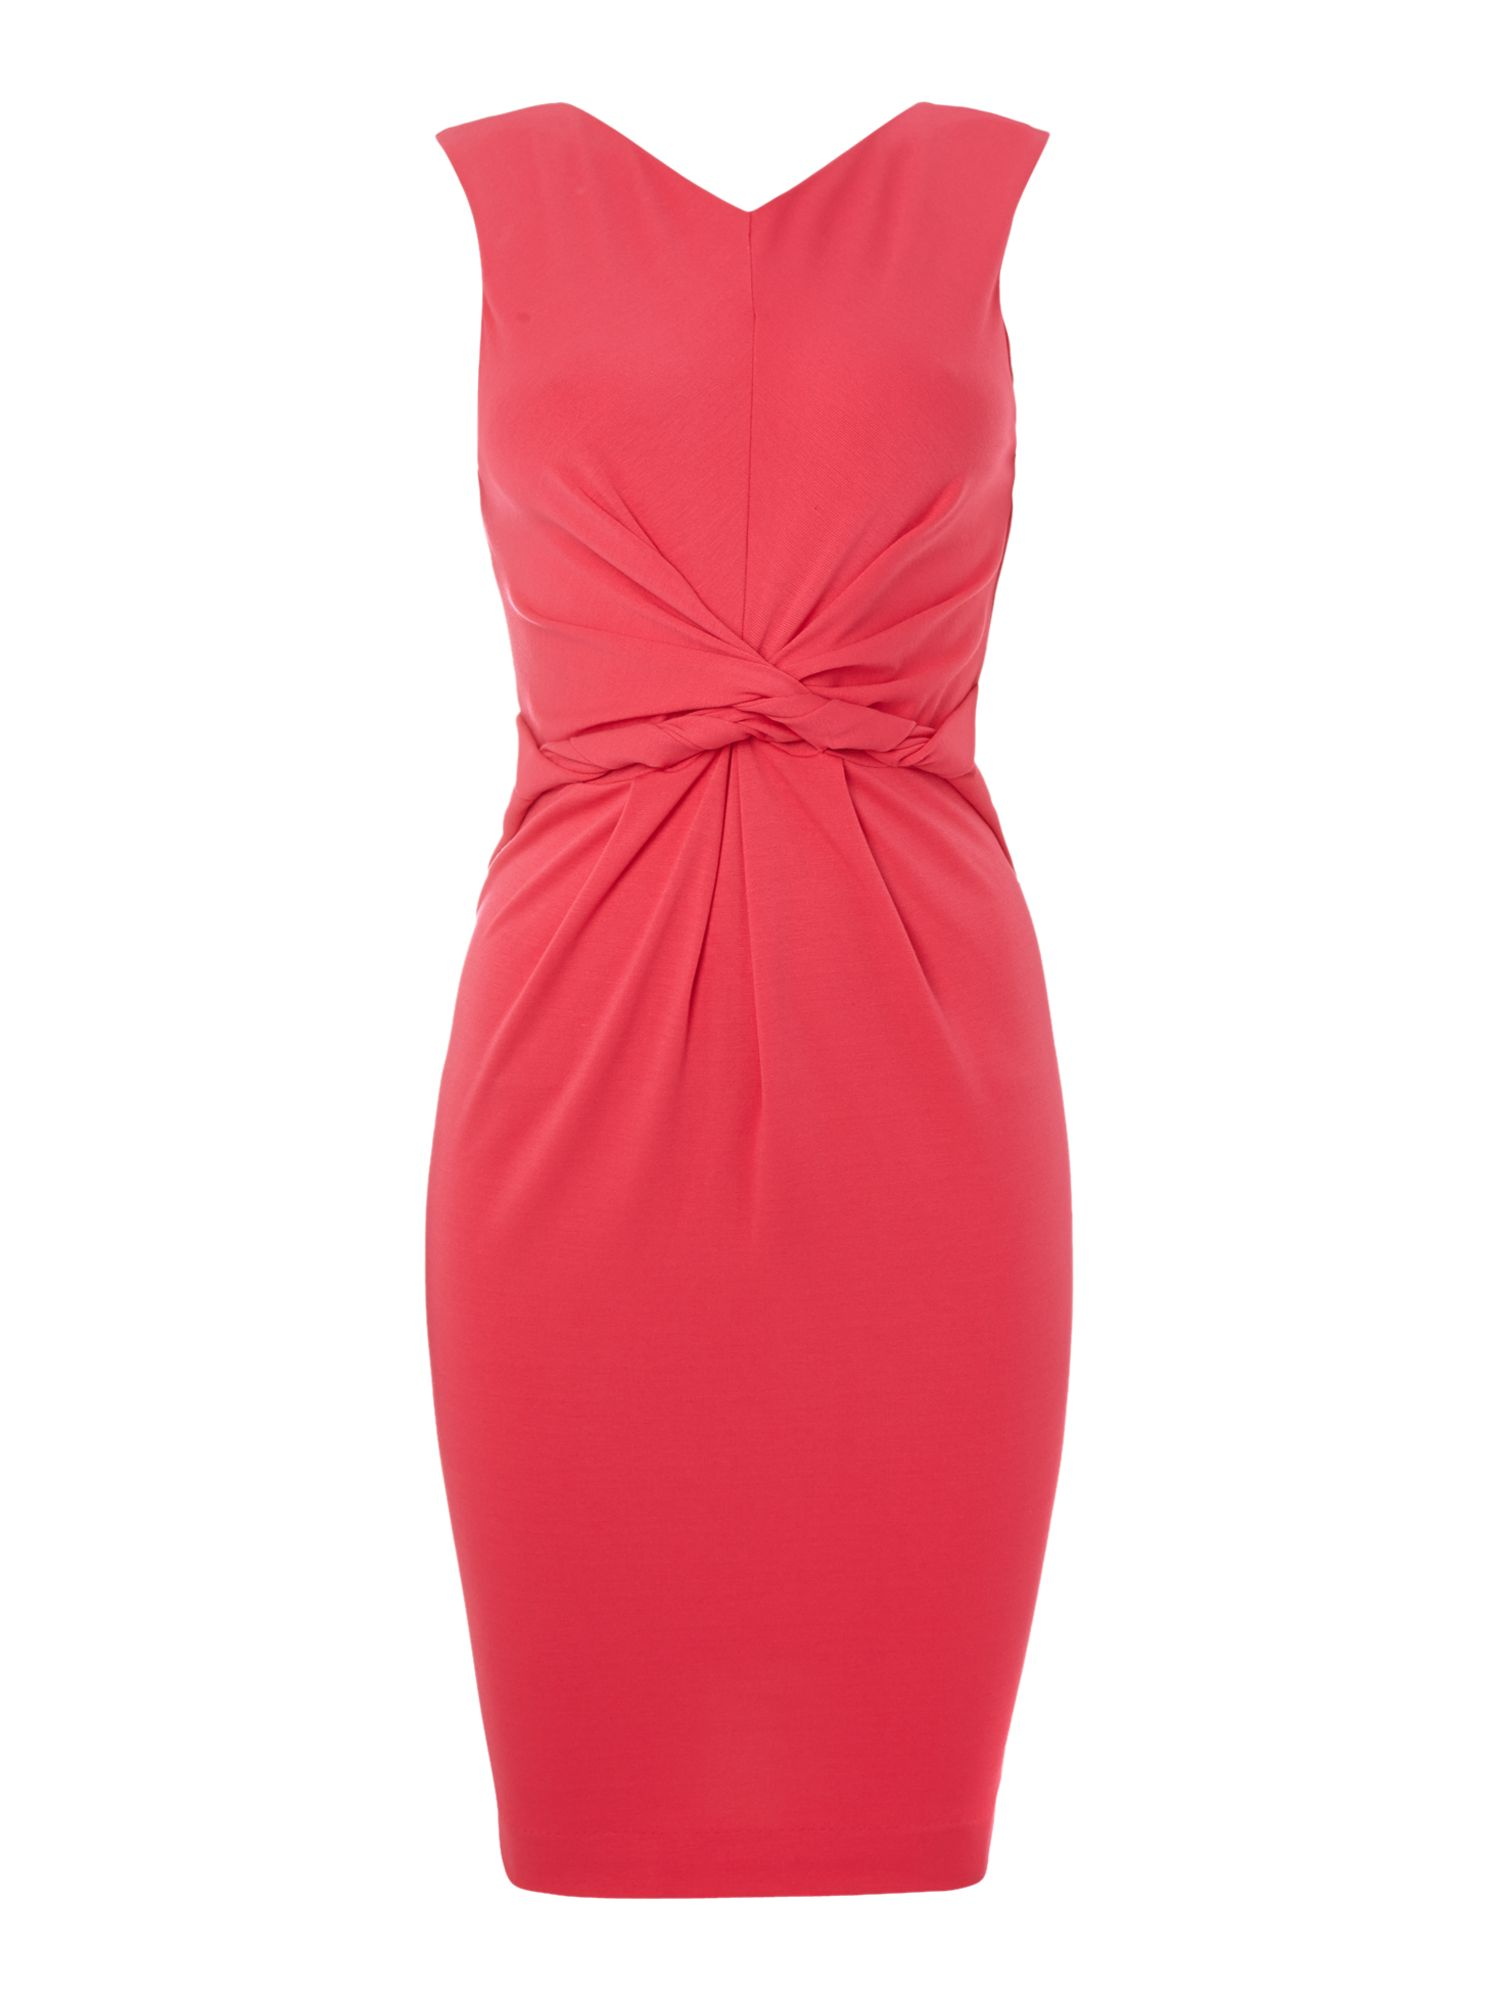 Sleeveless knot front dress